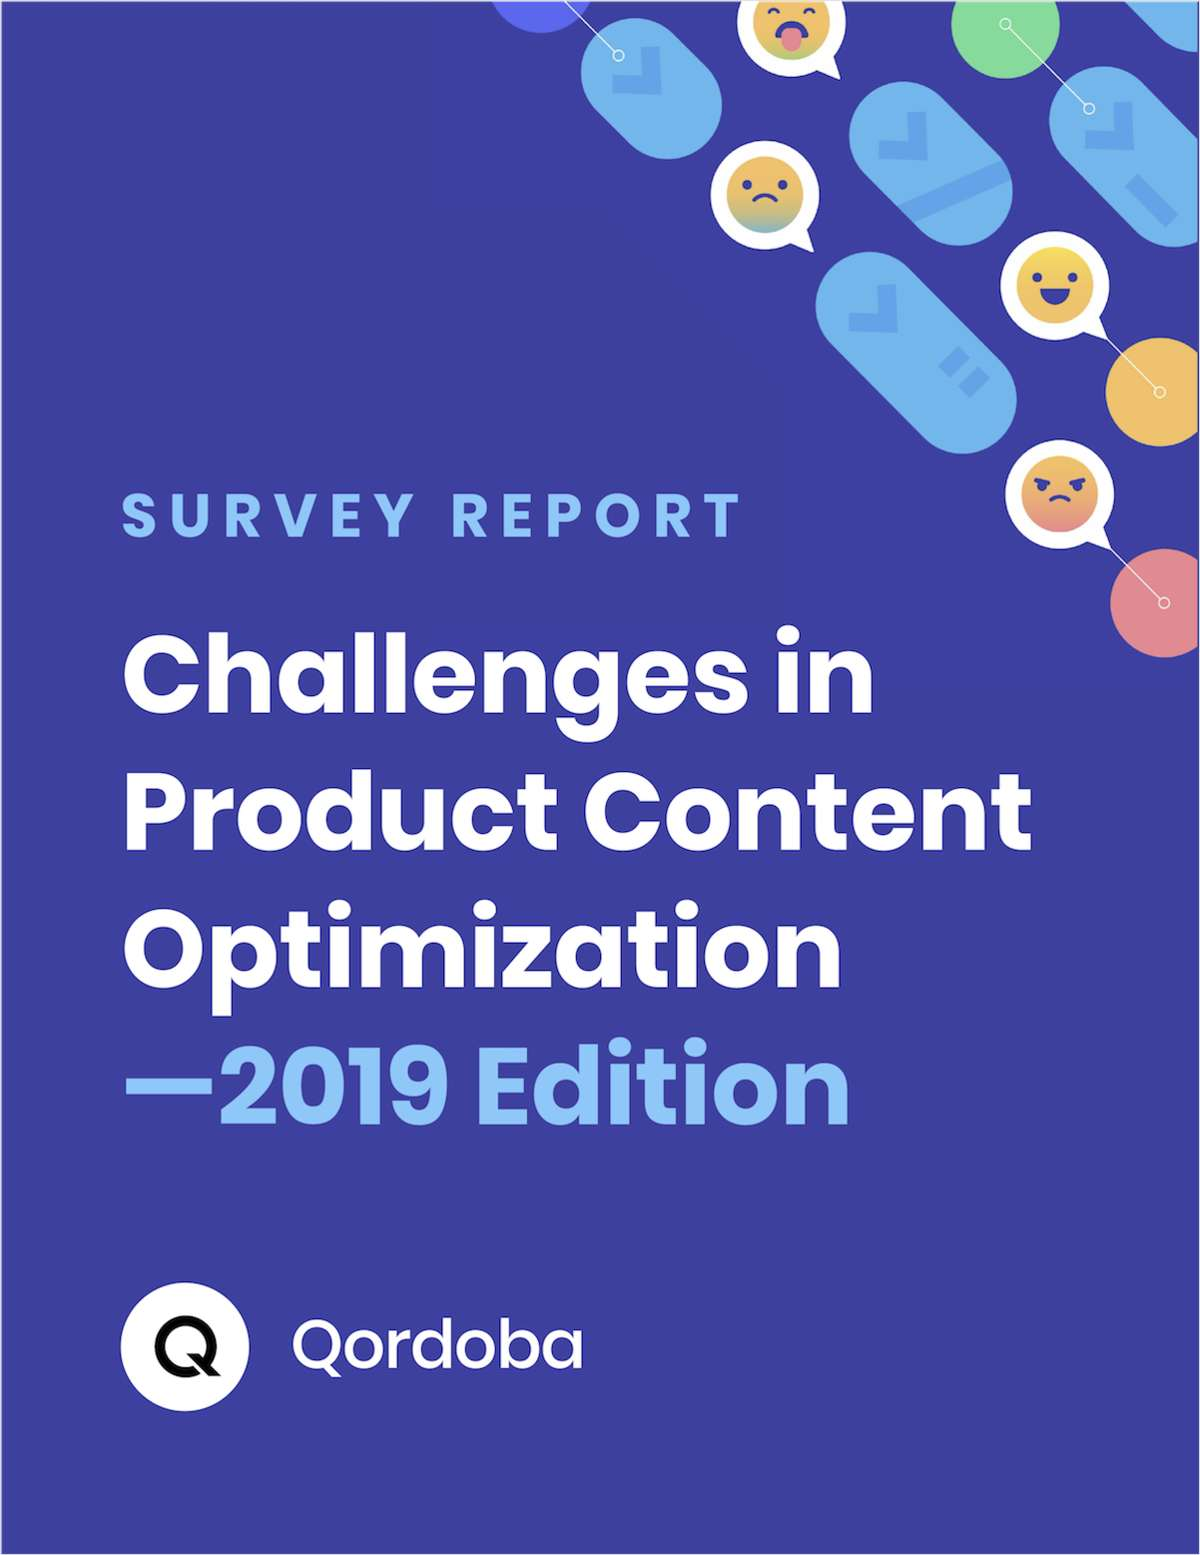 Challenges in Product Content Optimization